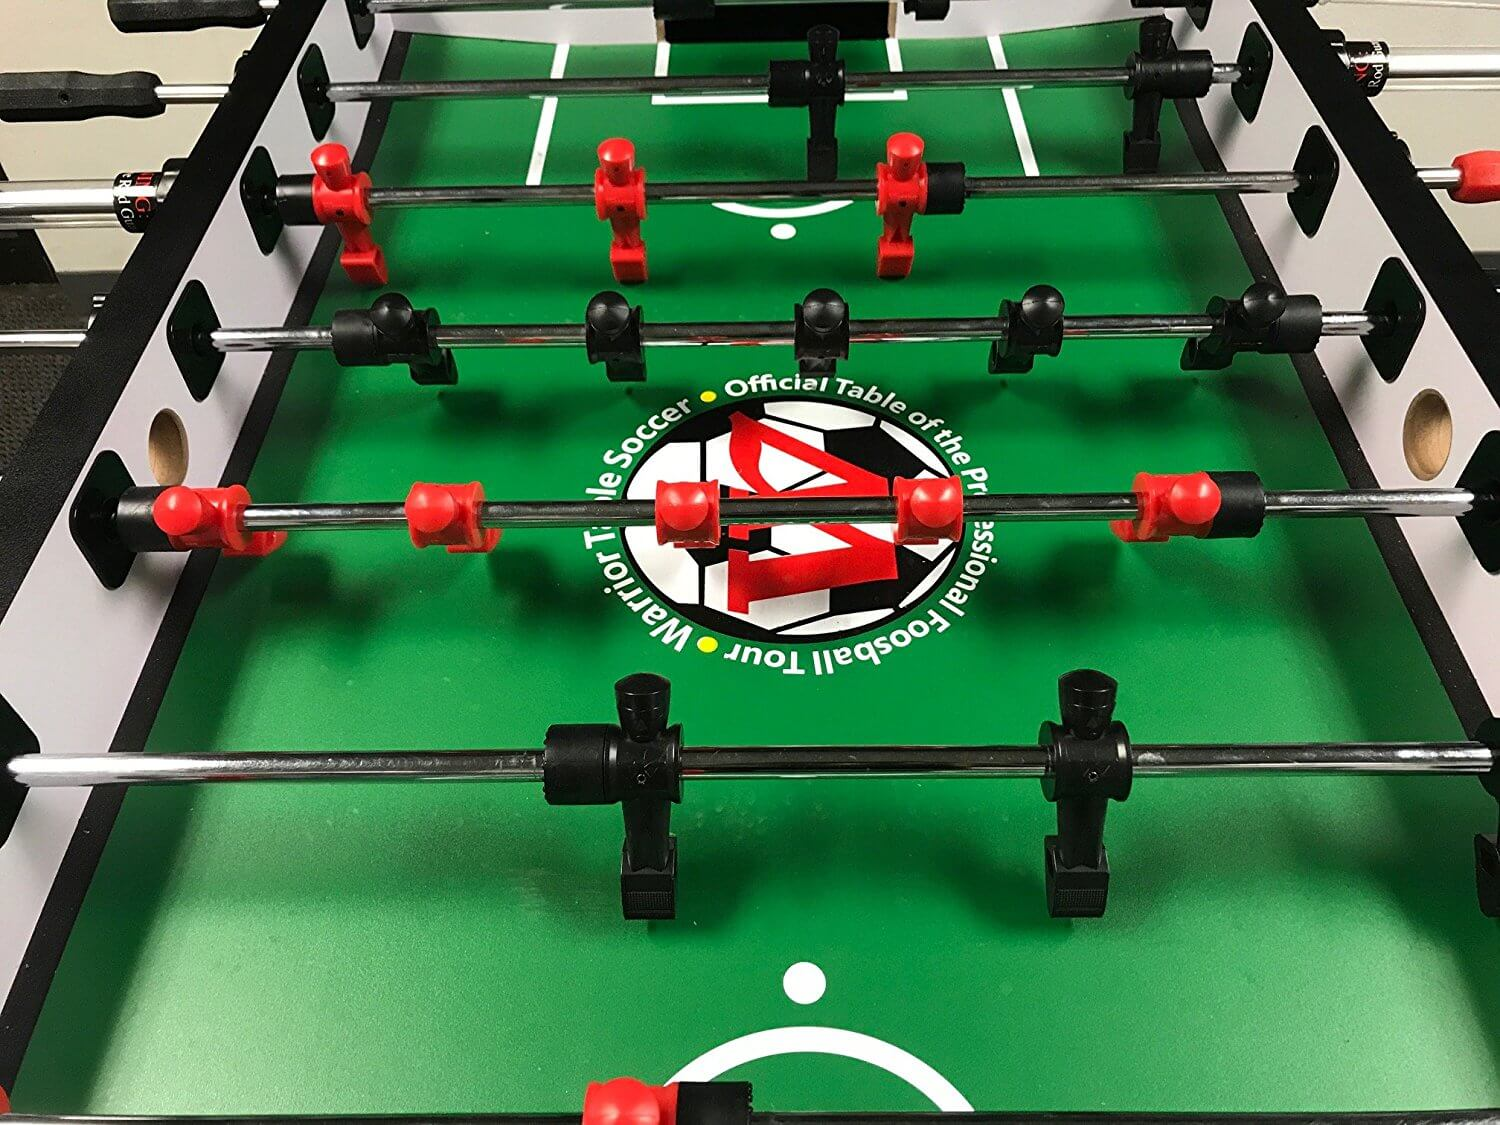 Buy Warrior Force 4 Led Foosball Table Online At 999